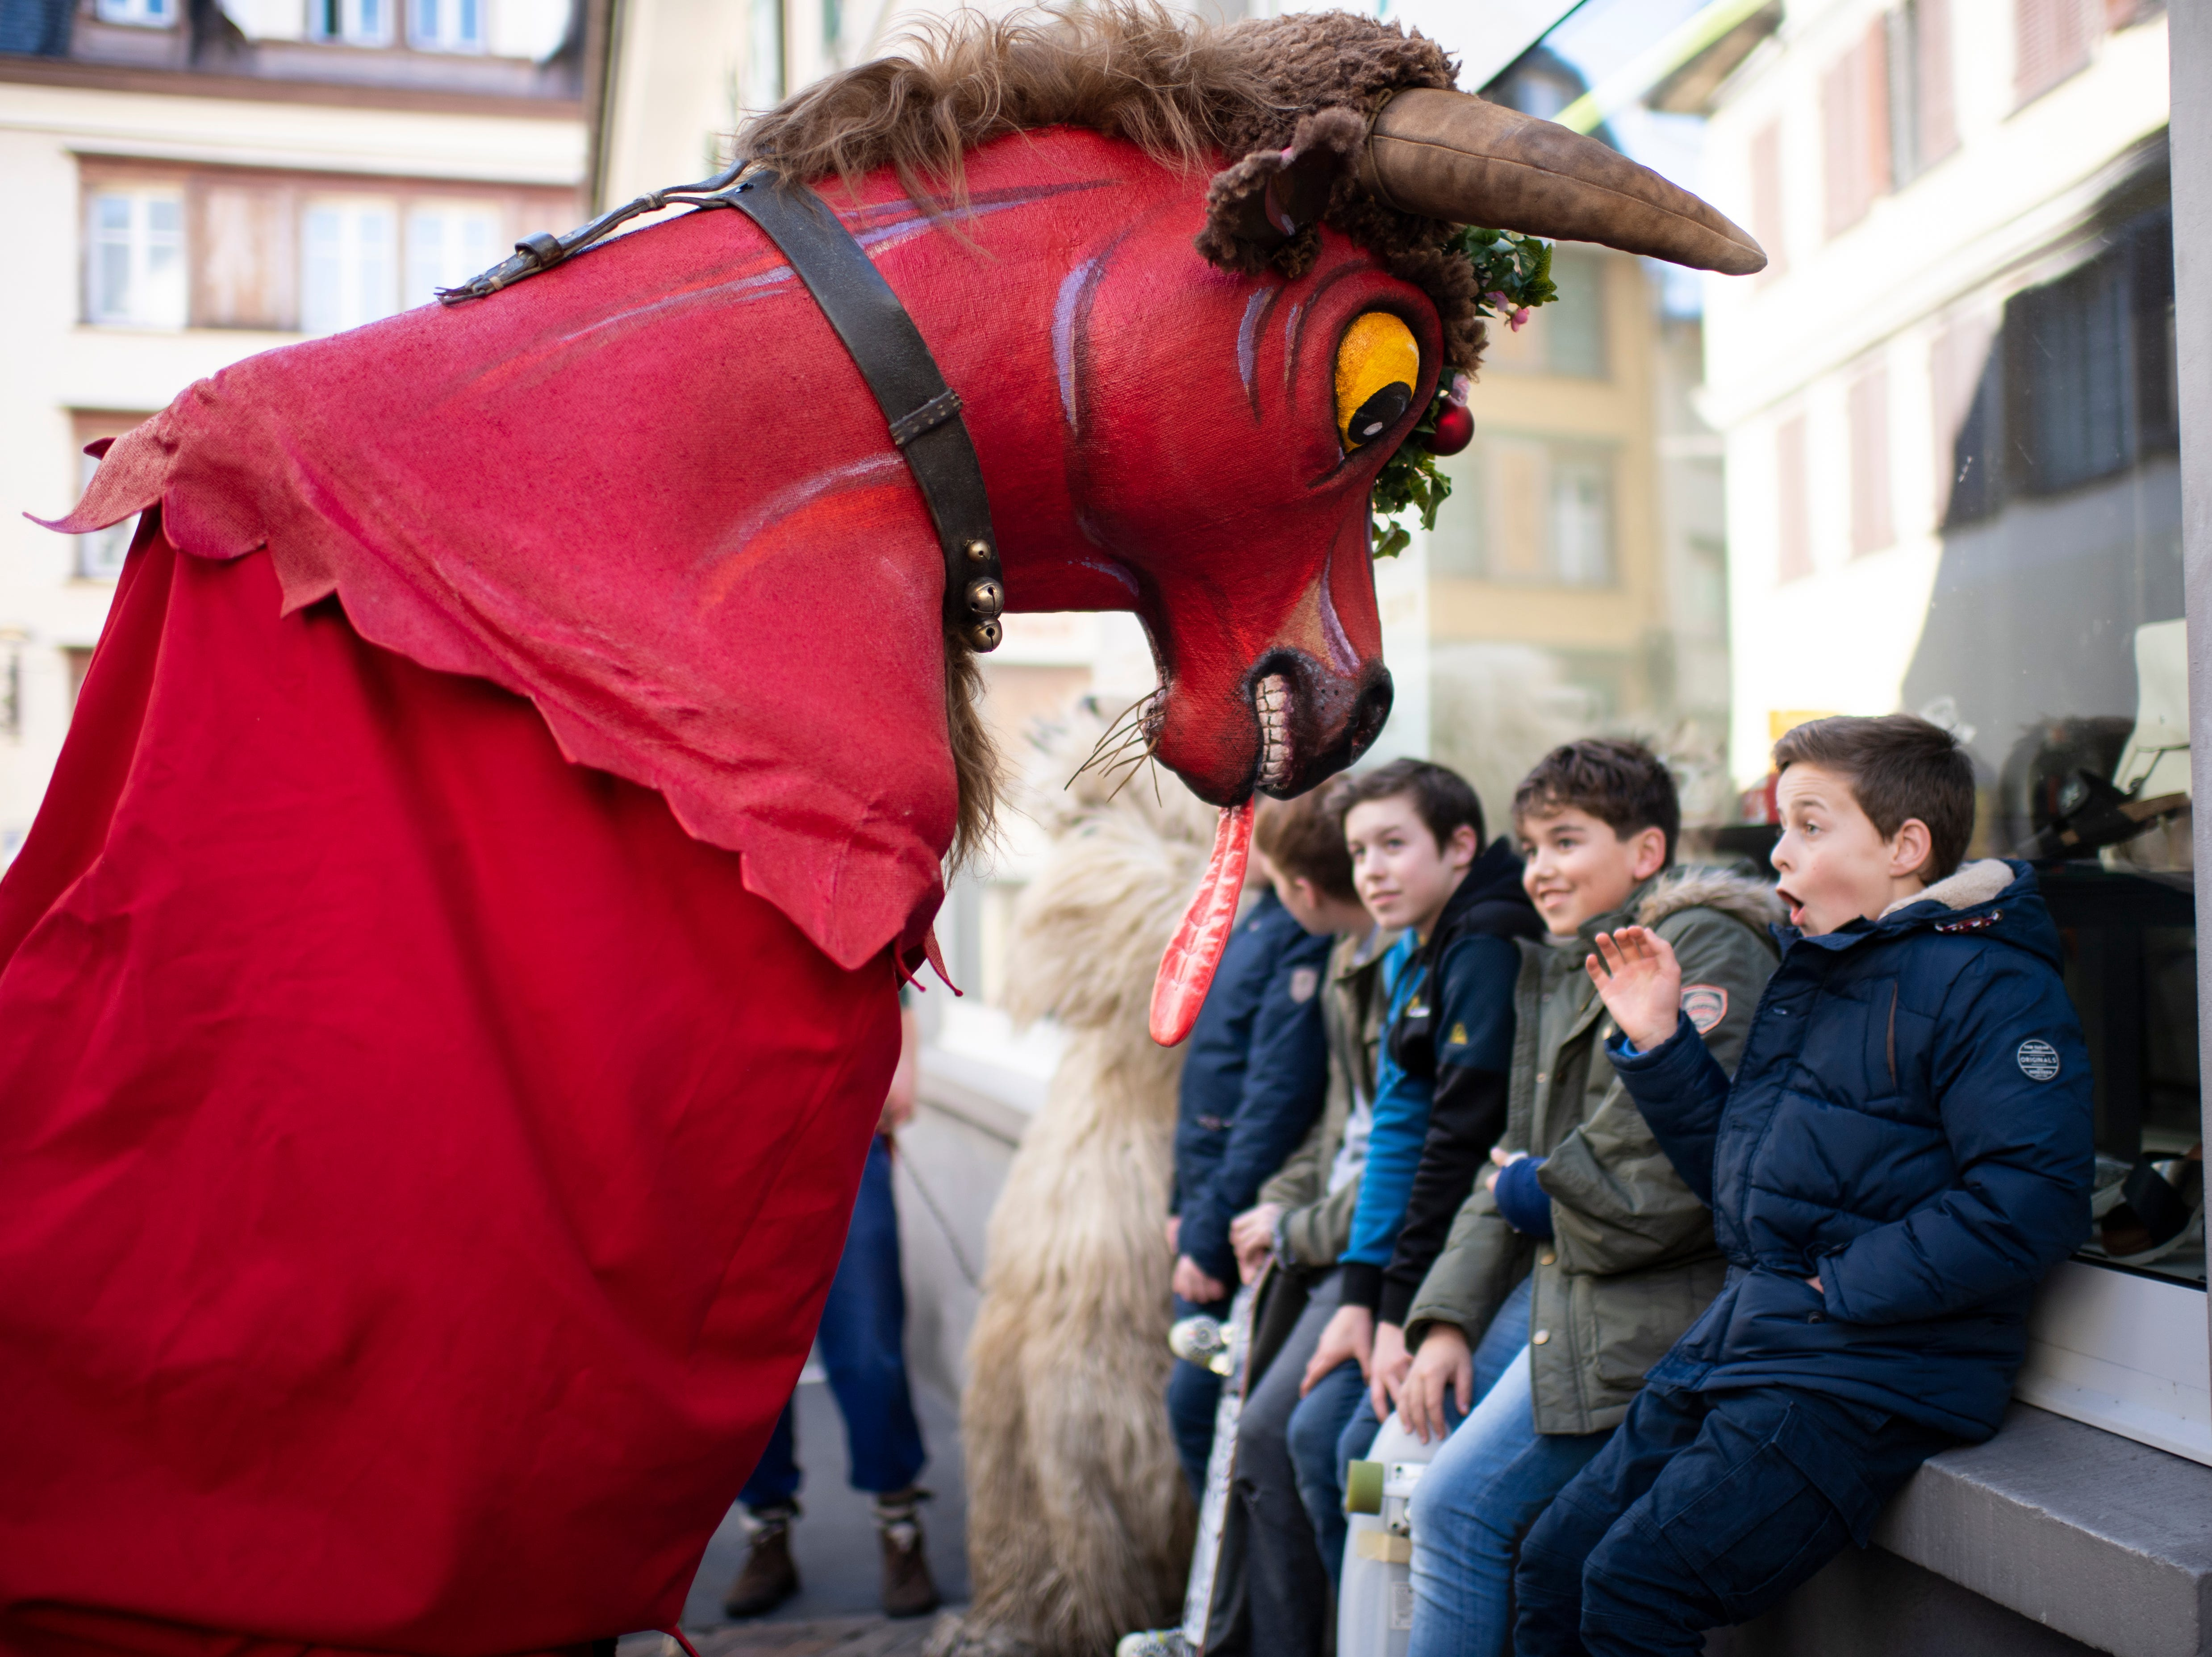 """The German carnival group """"Endinger Narrenzunft"""" perform during the European cultural custom meeting in Atlstaetten, Switzerland Saturday, Feb. 16, 2019. The meeting is held on the 100th anniversary of local carnival group """"Roellelibutzen Verein,"""" and brings together about 2,000 participants from carnival groups from all over Europe."""